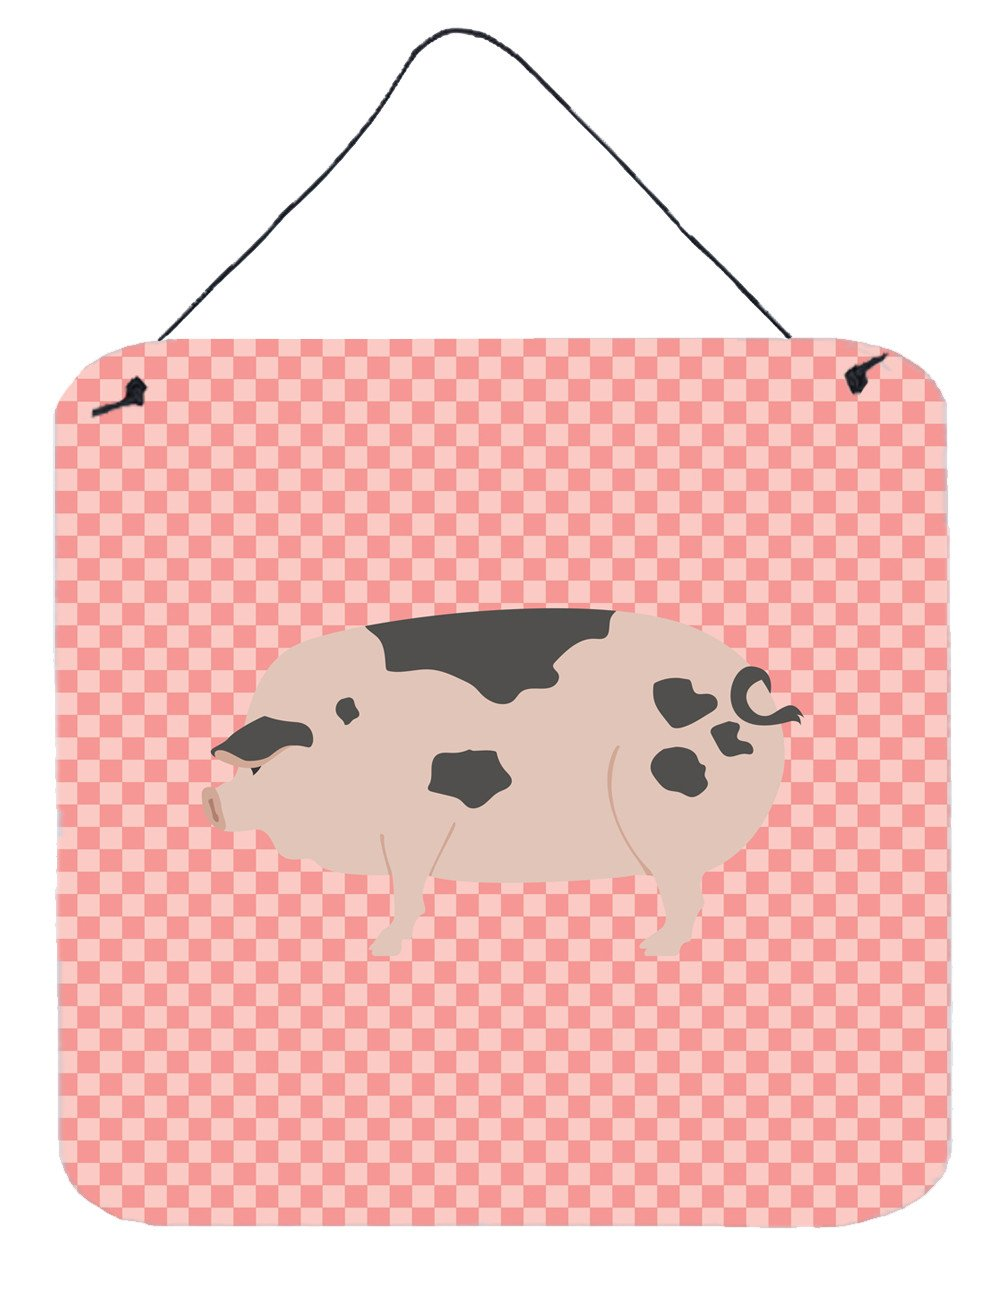 Gloucester Old Spot Pig Pink Check Wall or Door Hanging Prints BB7940DS66 by Caroline's Treasures